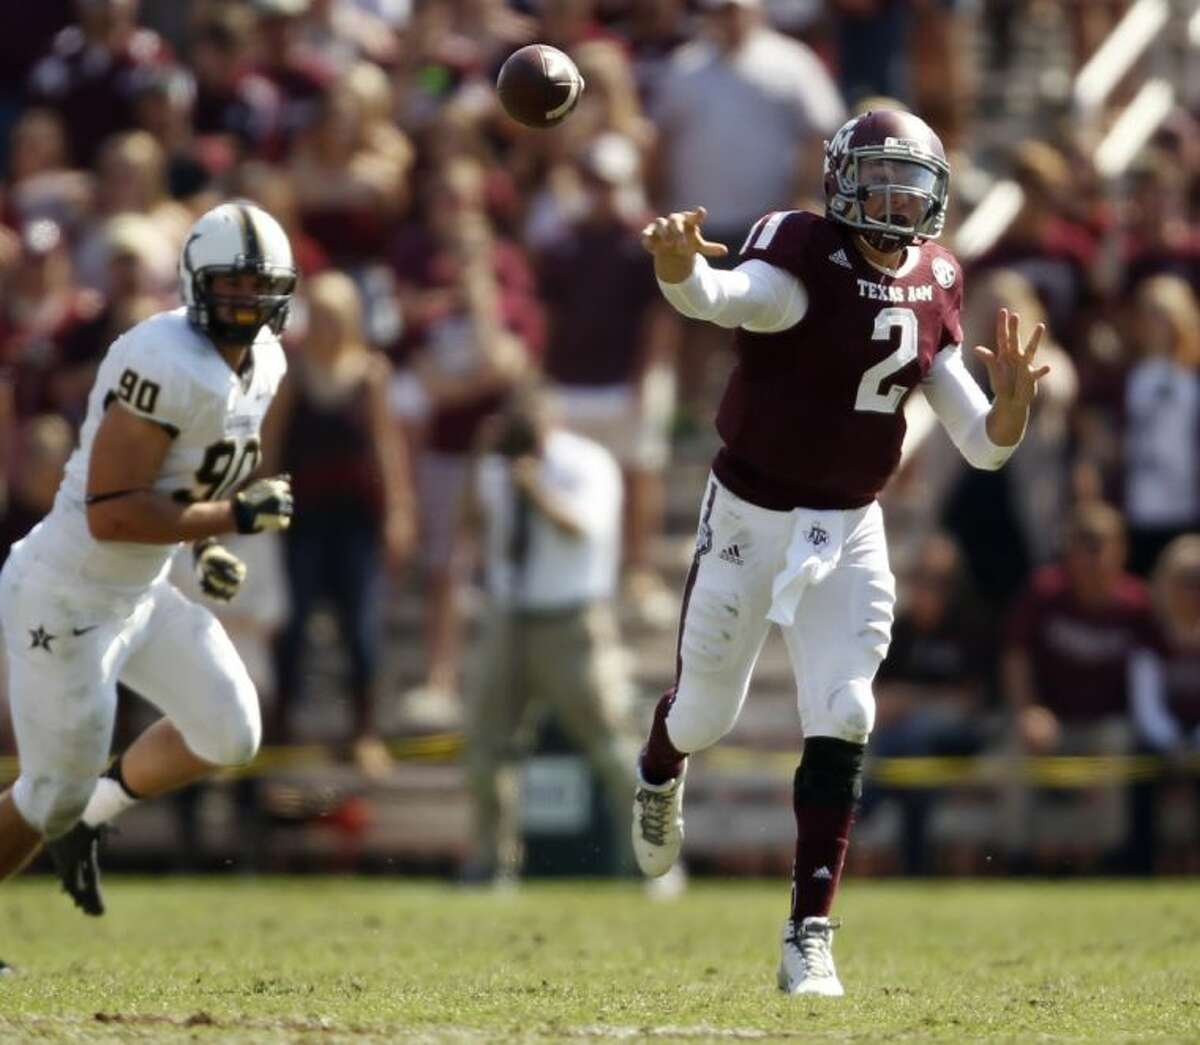 Texas A&M's Johnny Manziel throws a pass against Vanderbilt on Saturday in College Station. The Aggies won 56-24.